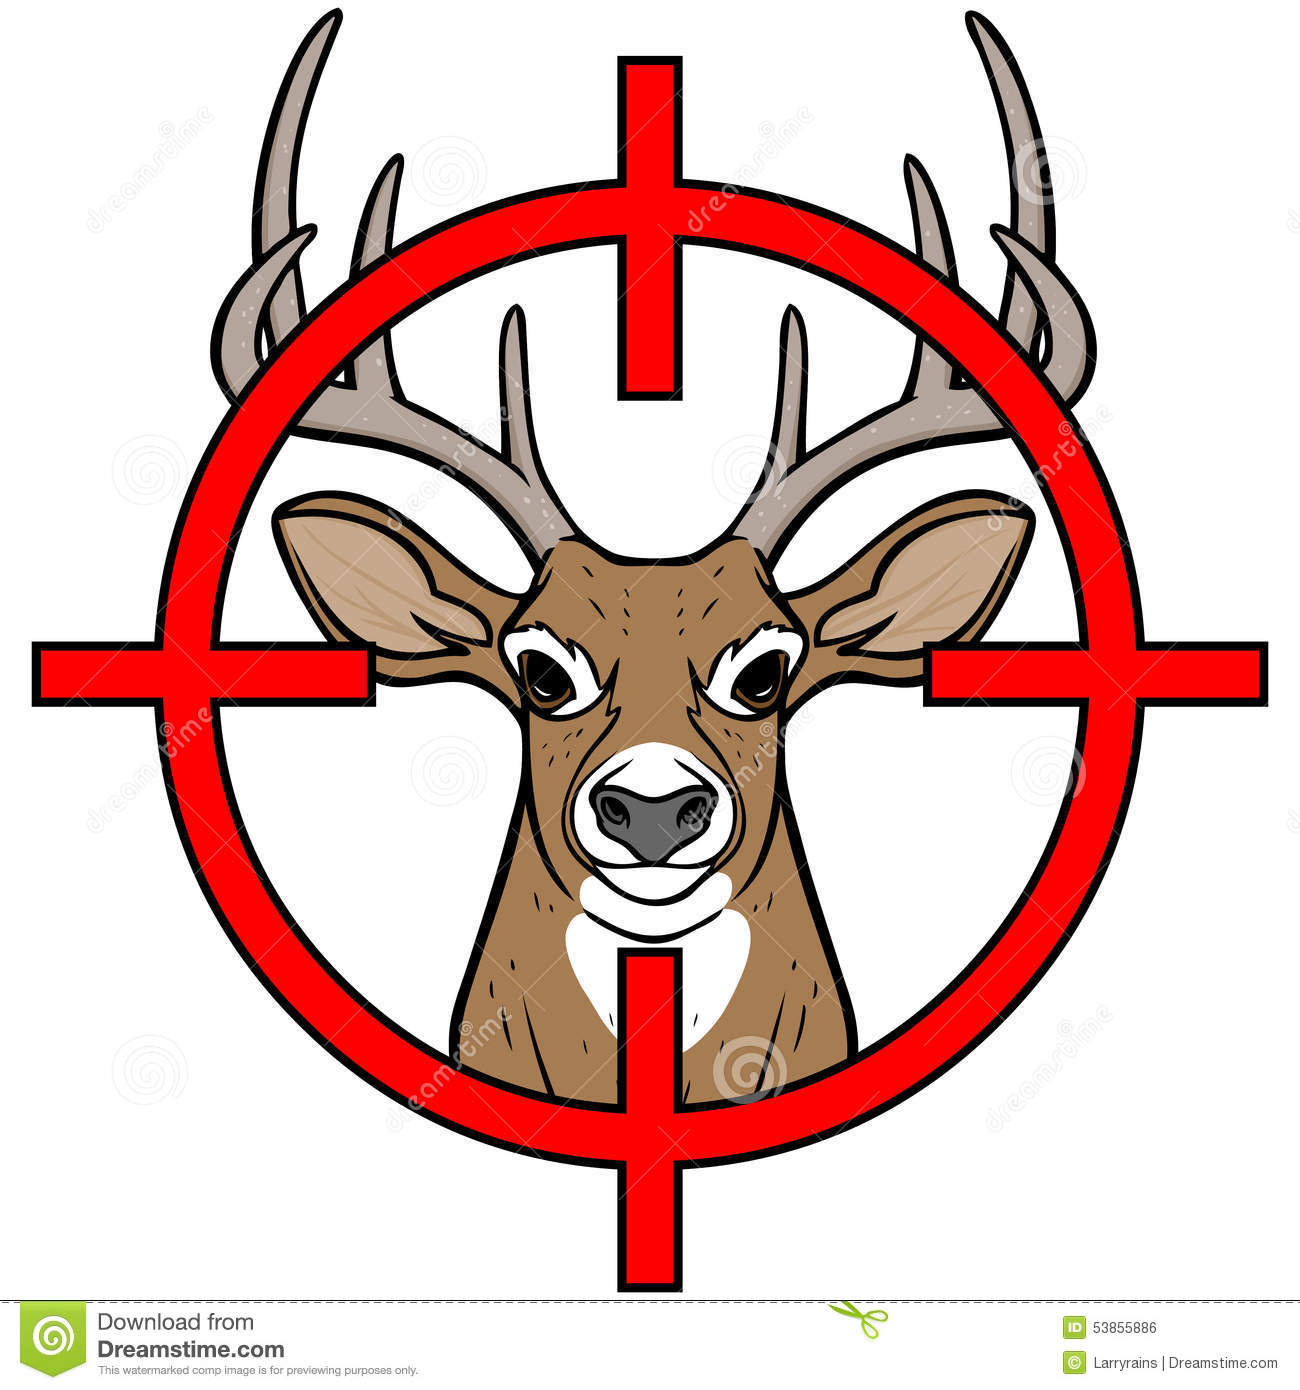 Clipart deer hunting.